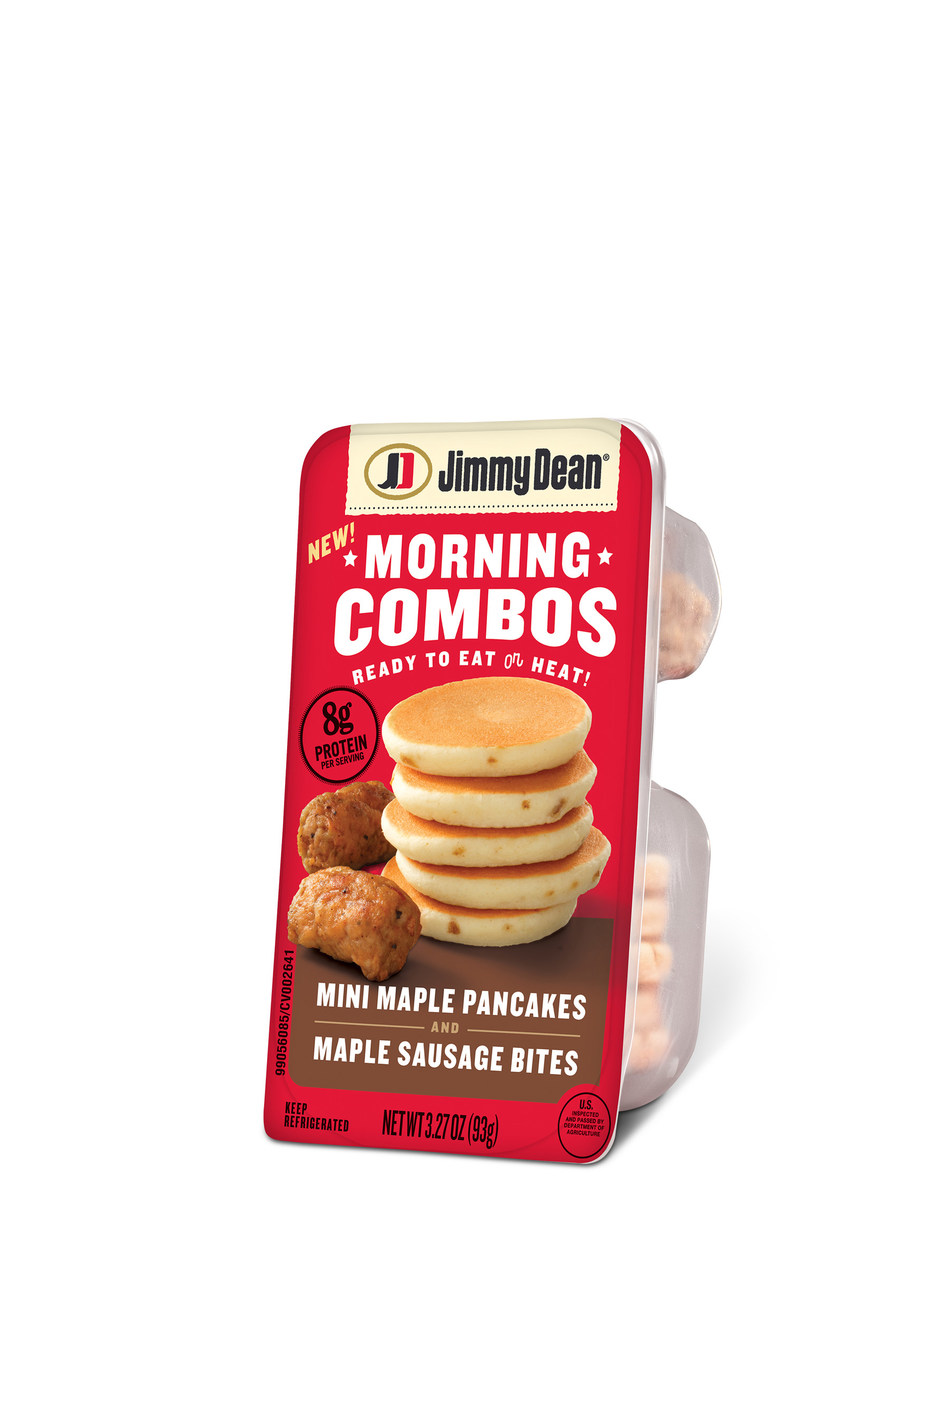 Available nationwide this October, Jimmy Dean Morning Combos are your favorite breakfast made mini. These on-the-go packs offer a convenient way to enjoy a protein packed, warm breakfast.